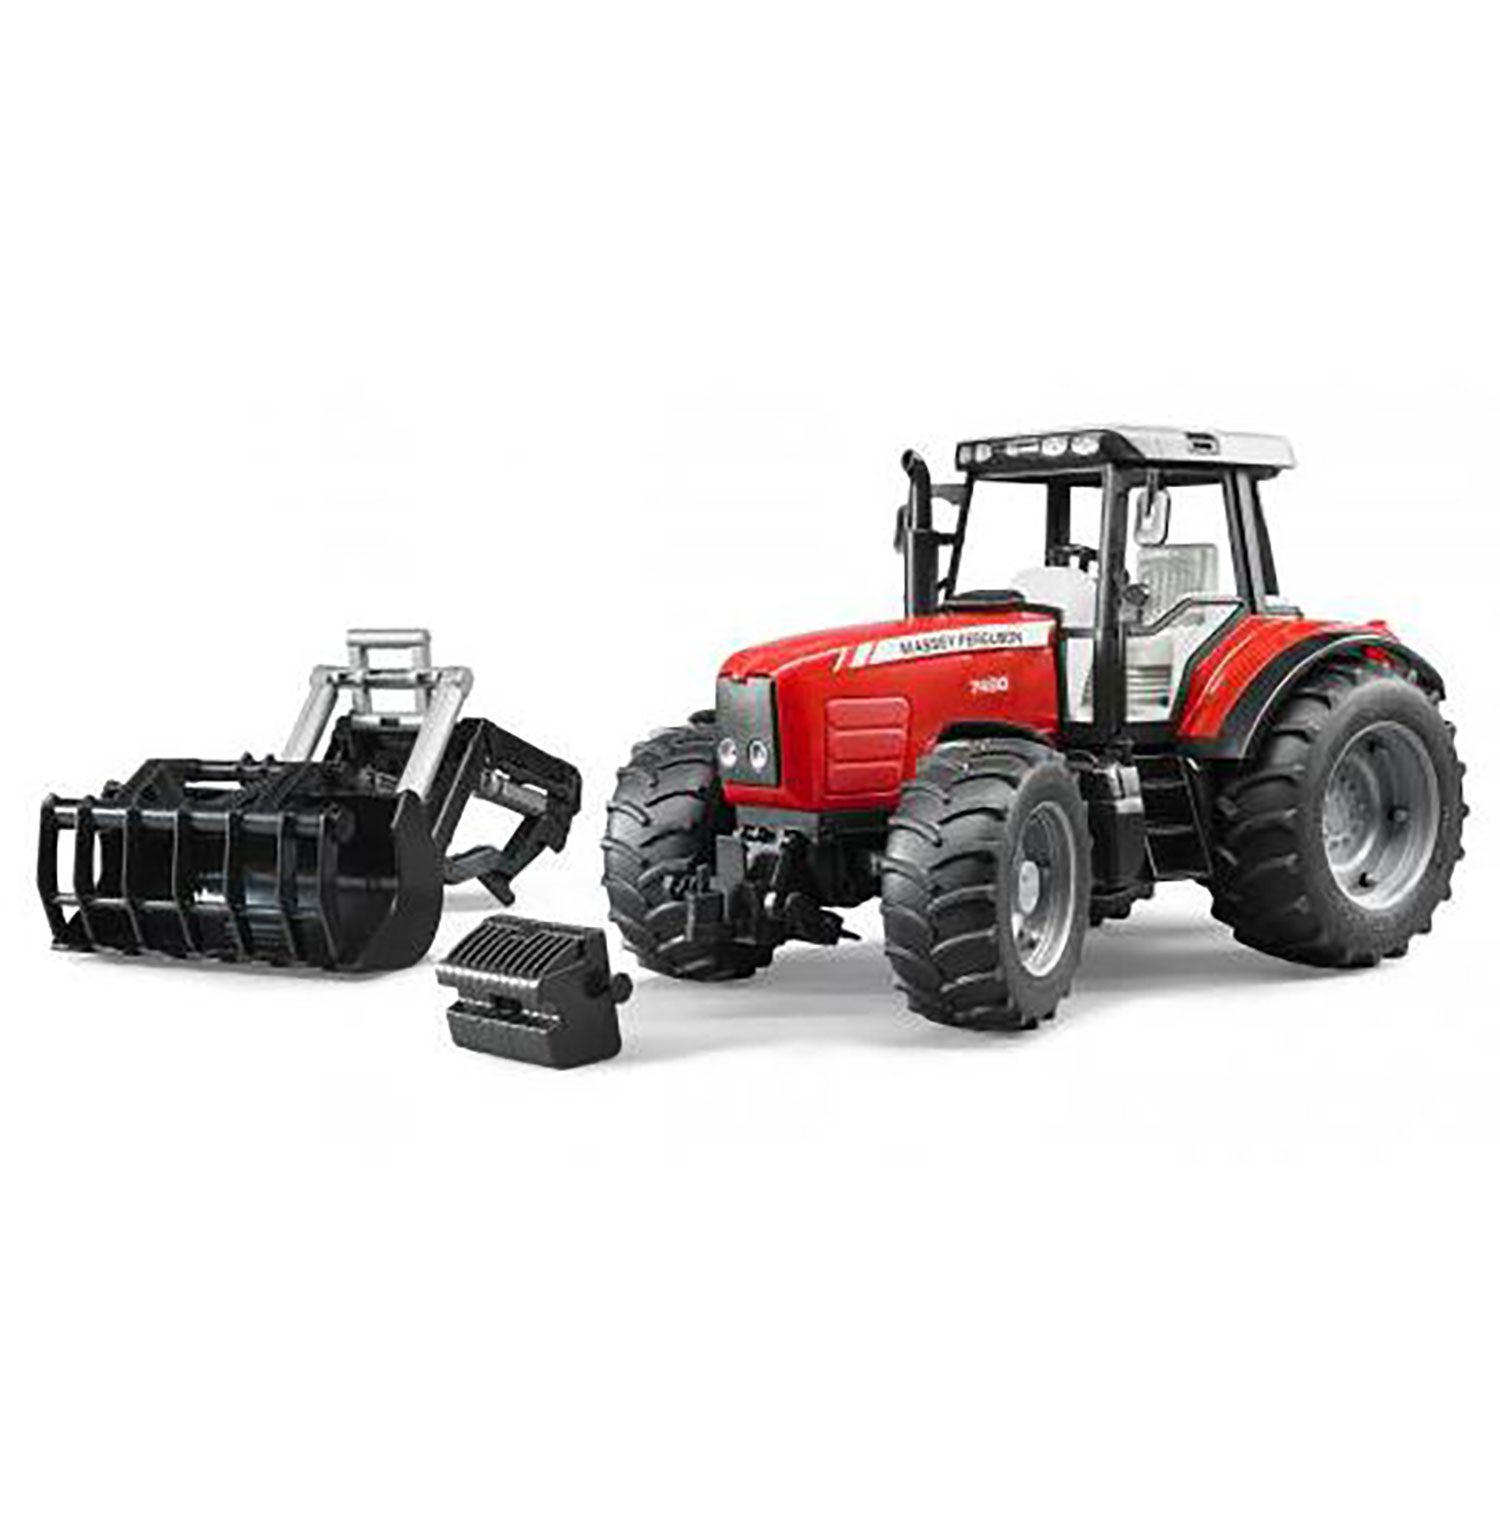 Bruder Toys Massey Ferguson Toy Farming Tractor with Attachable Front Loader by Bruder Toys